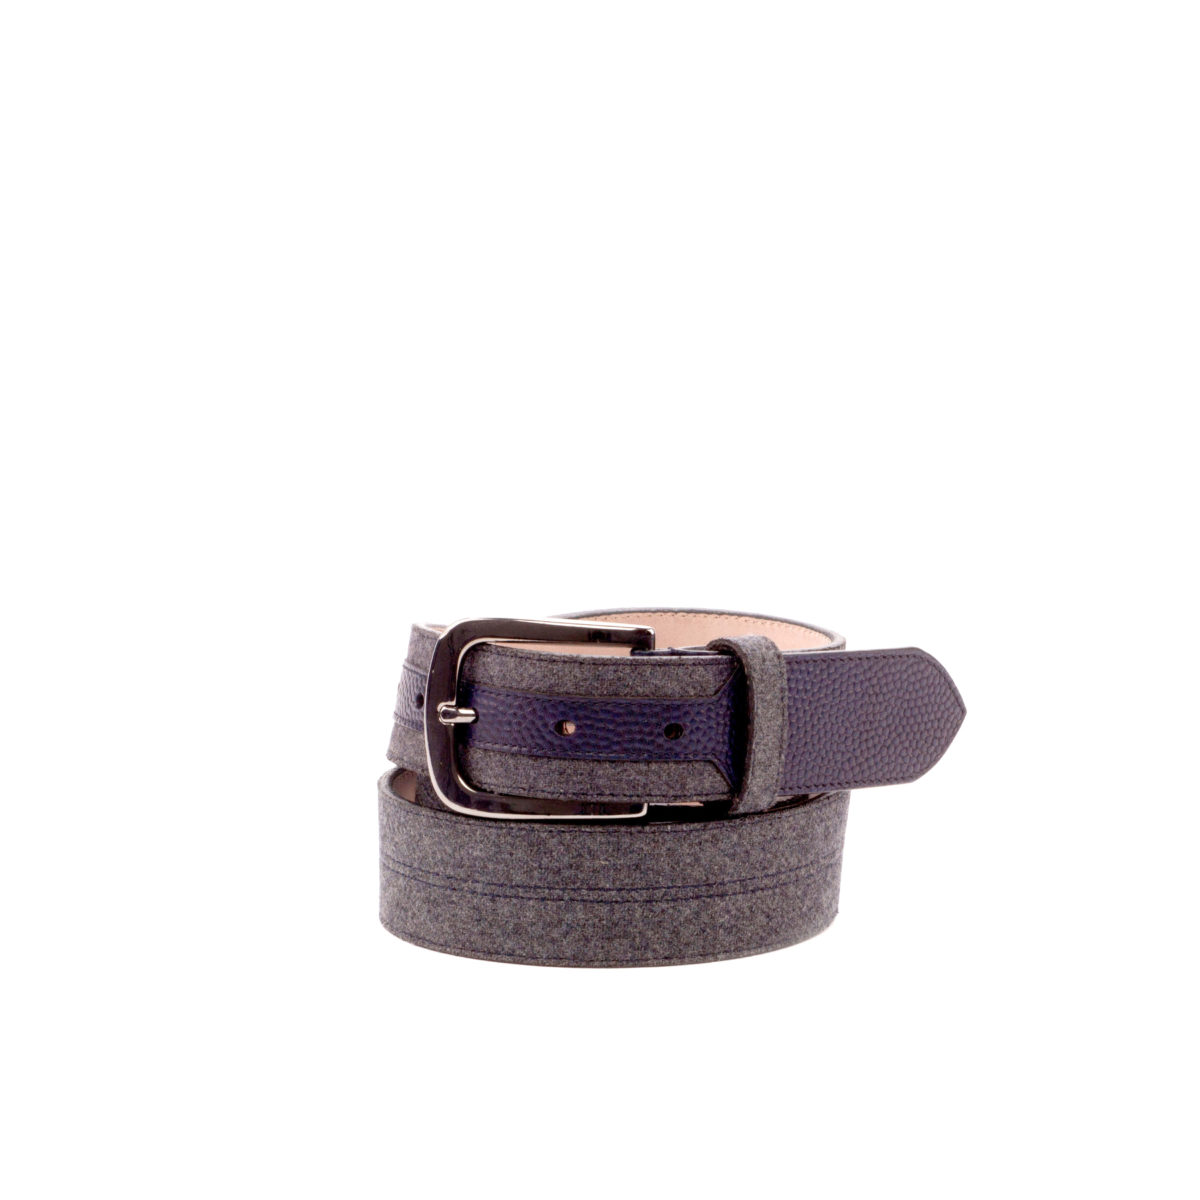 Side view of model Athania, navy blue painted pebble grain, flannel light grey, stone nubuck, graphite buckle Golf BespokeShoes